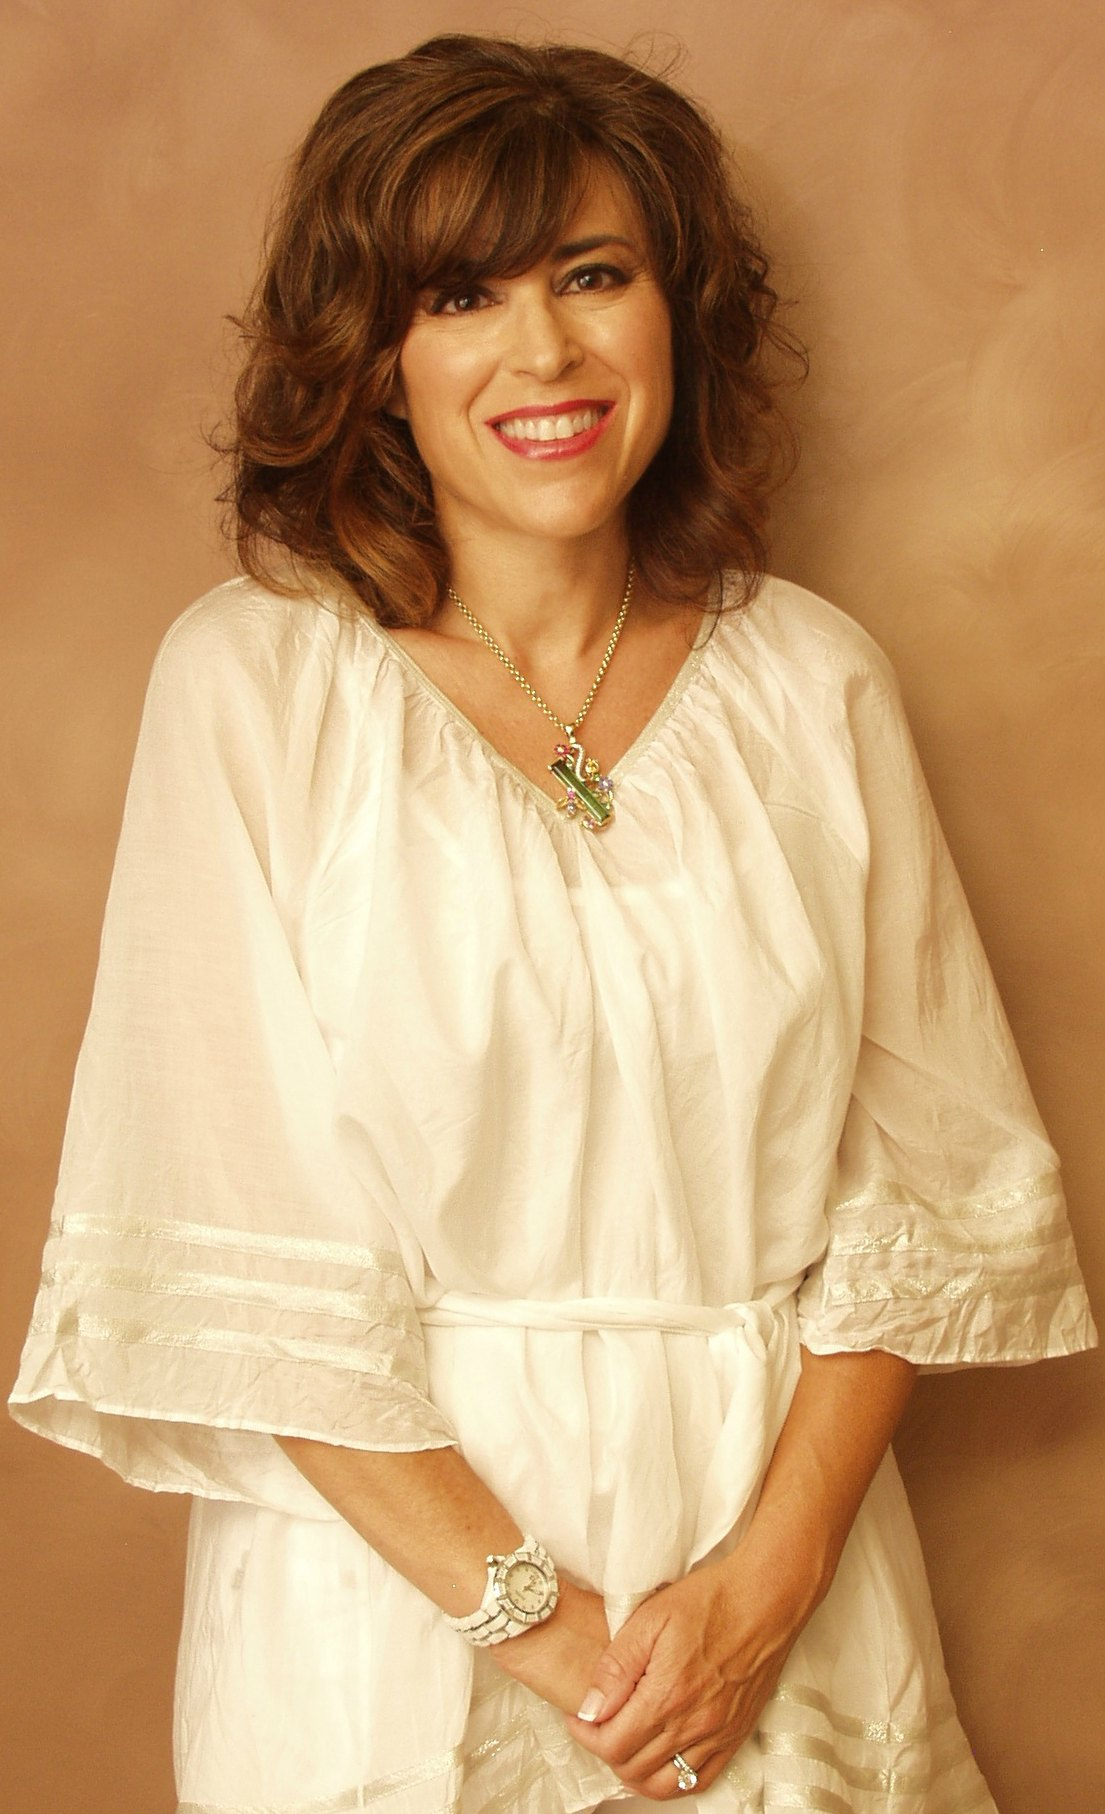 PreQM Founder Wendy Baruh.jpg